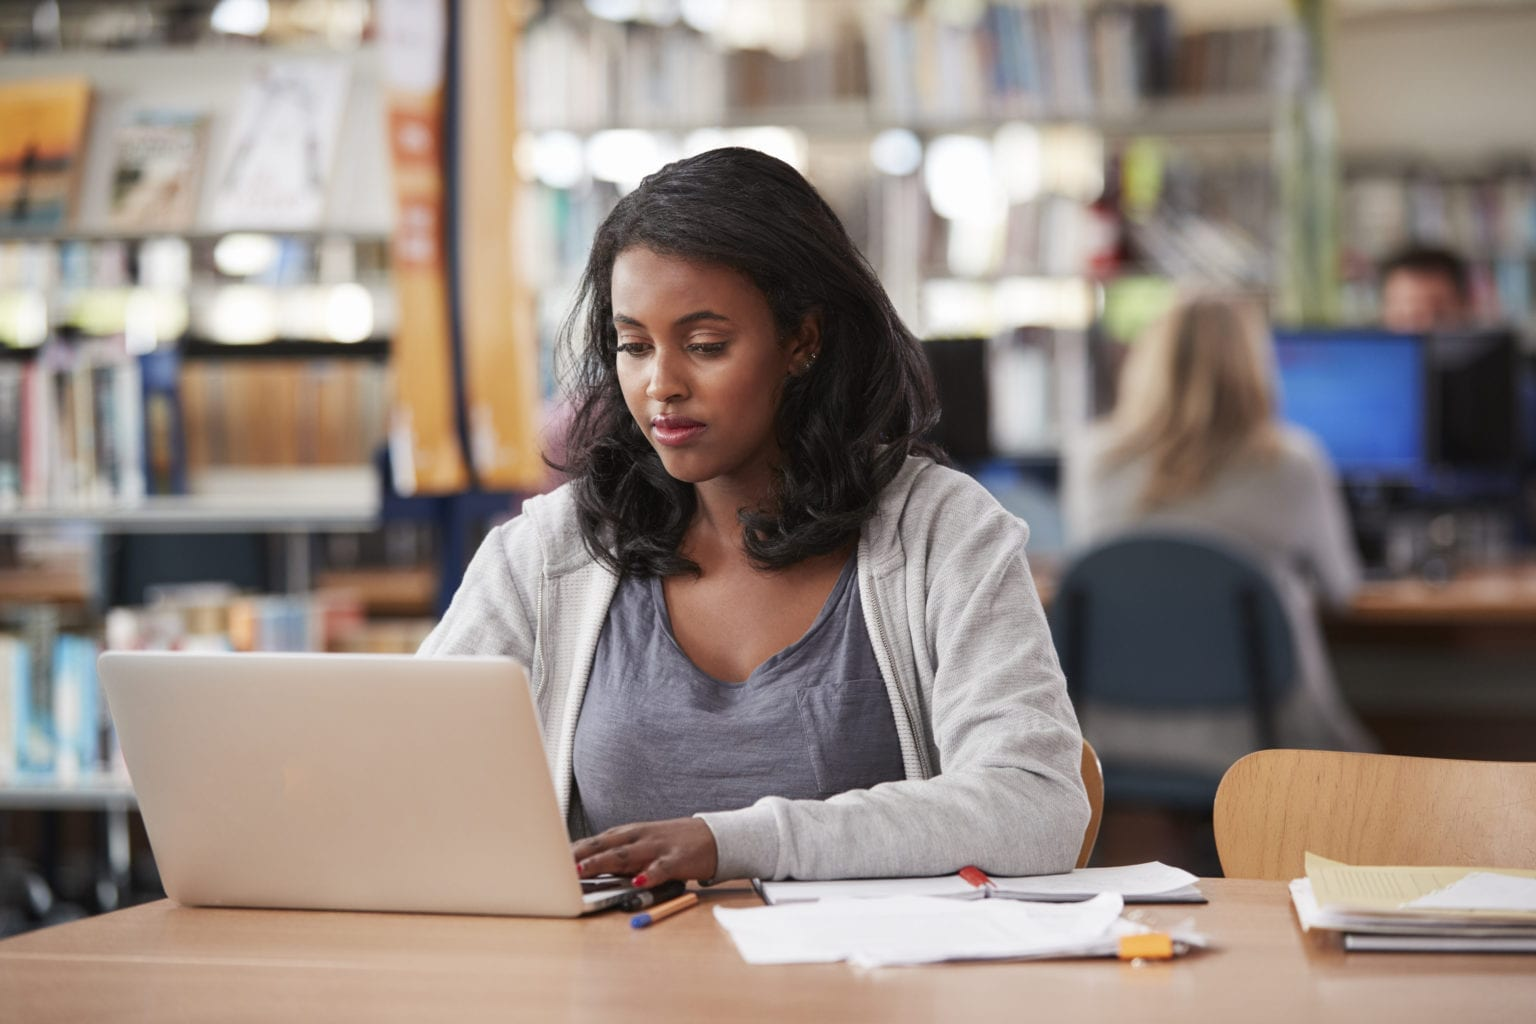 Female student on laptop in library